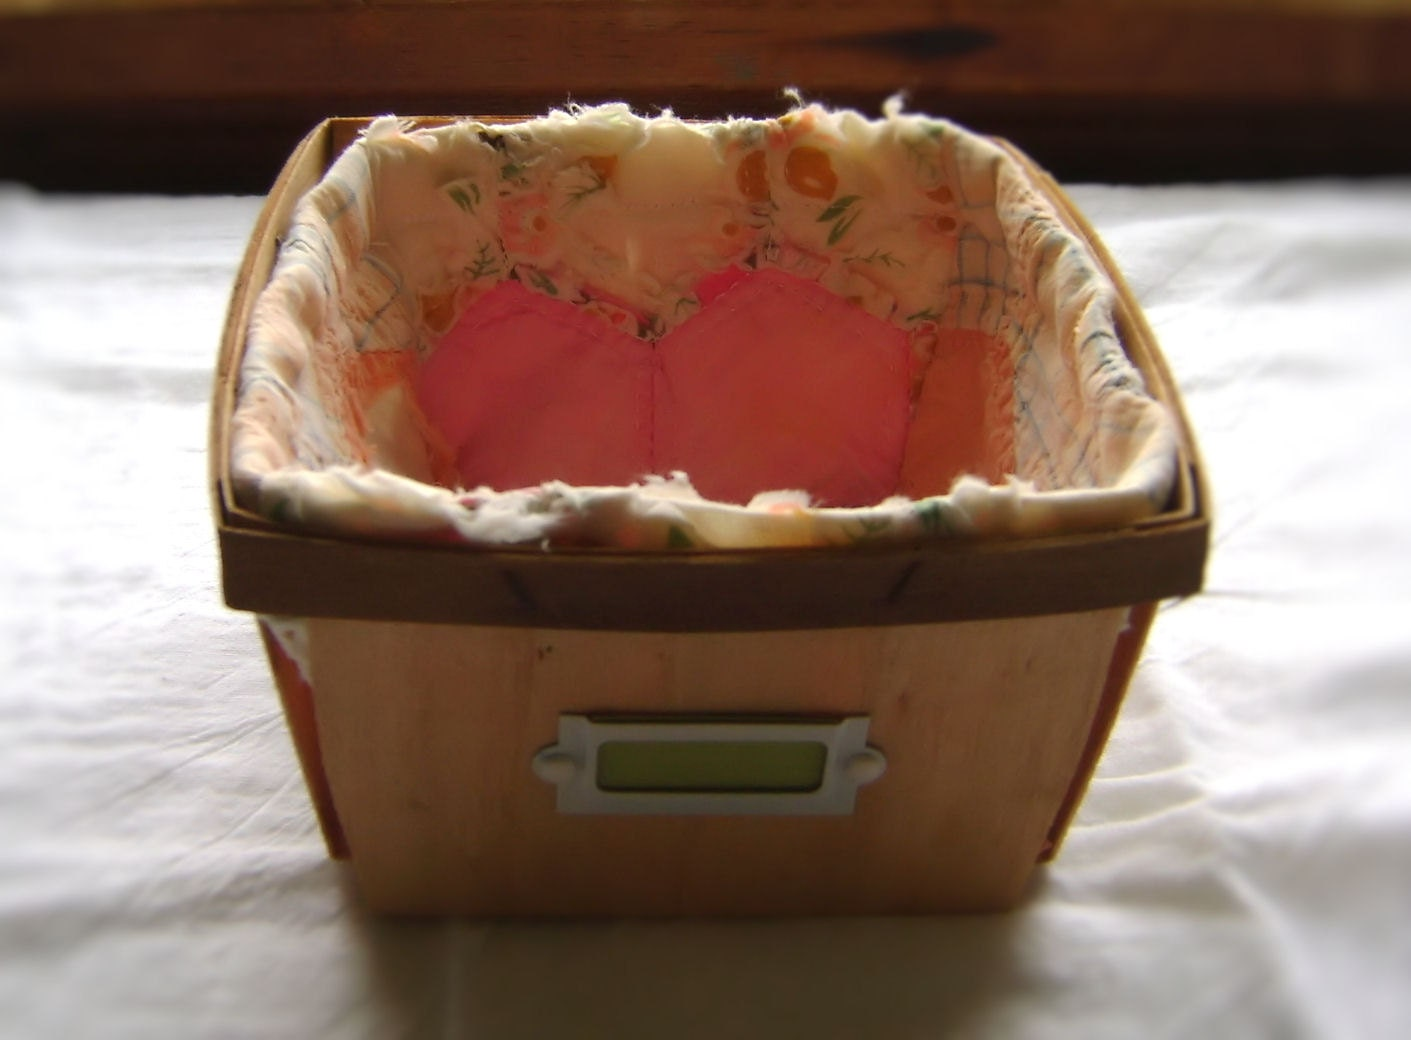 Upcycled vintage berry basket with vintage quilt liner